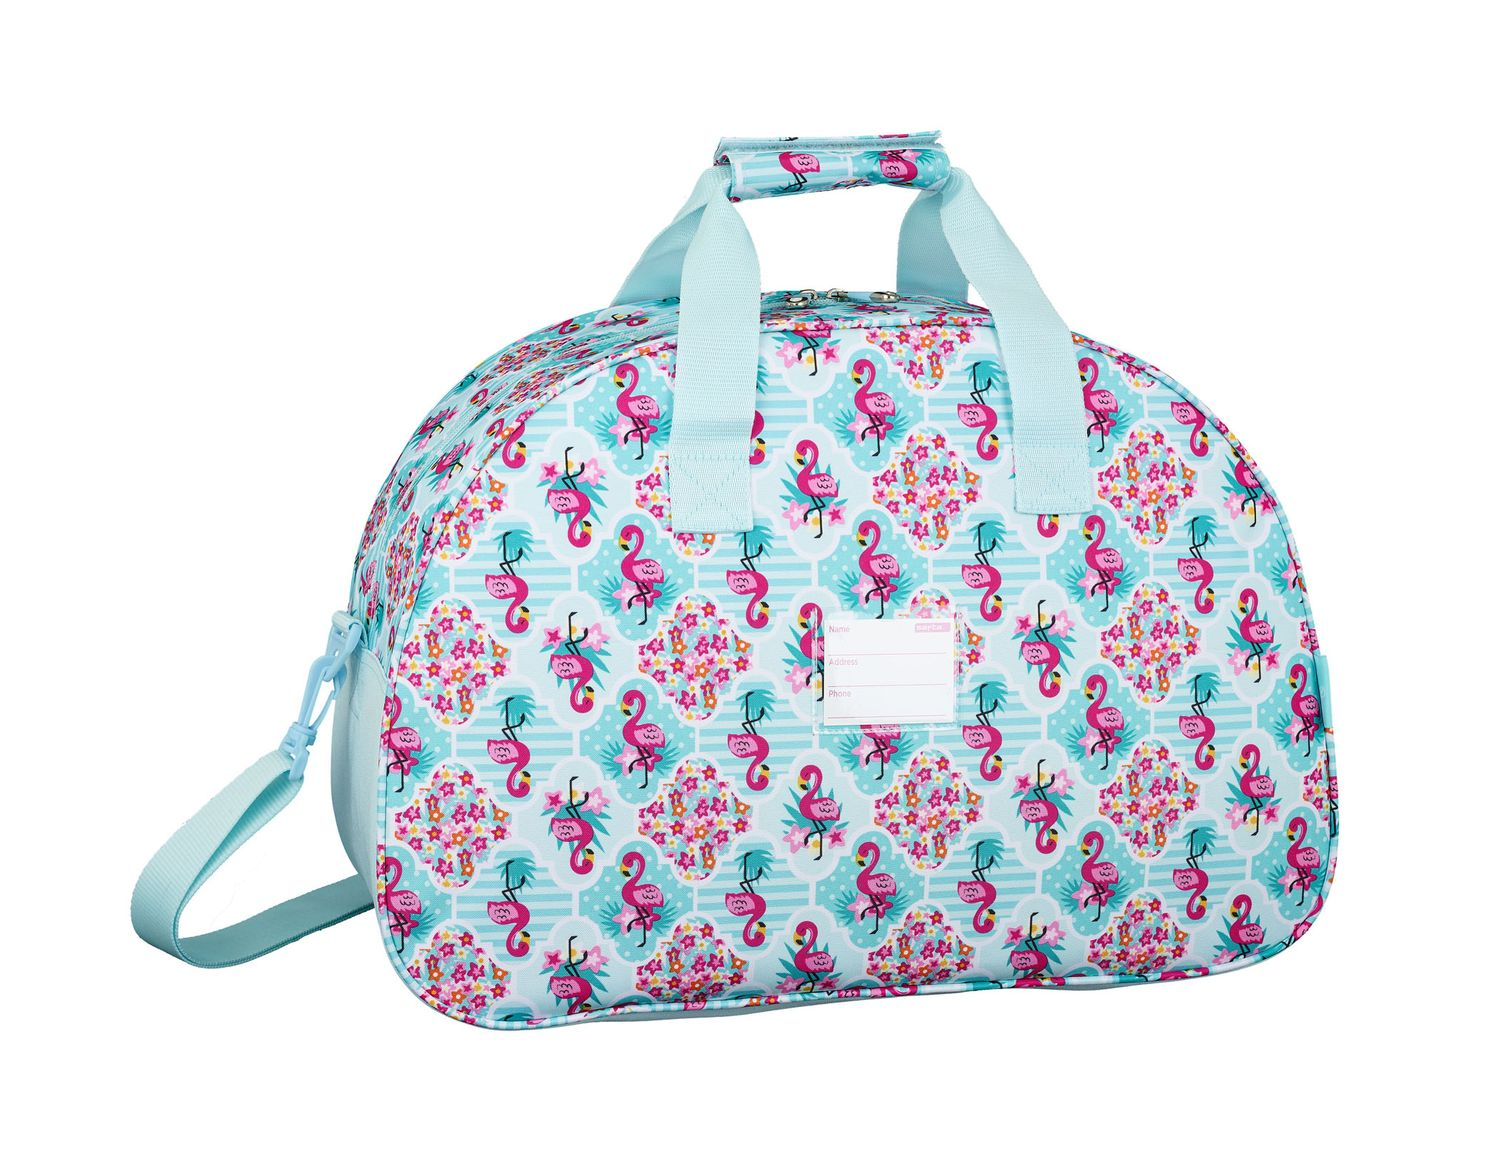 Travel Sports Bag 48 cm MOOS Flamingo Turquoise – image 2